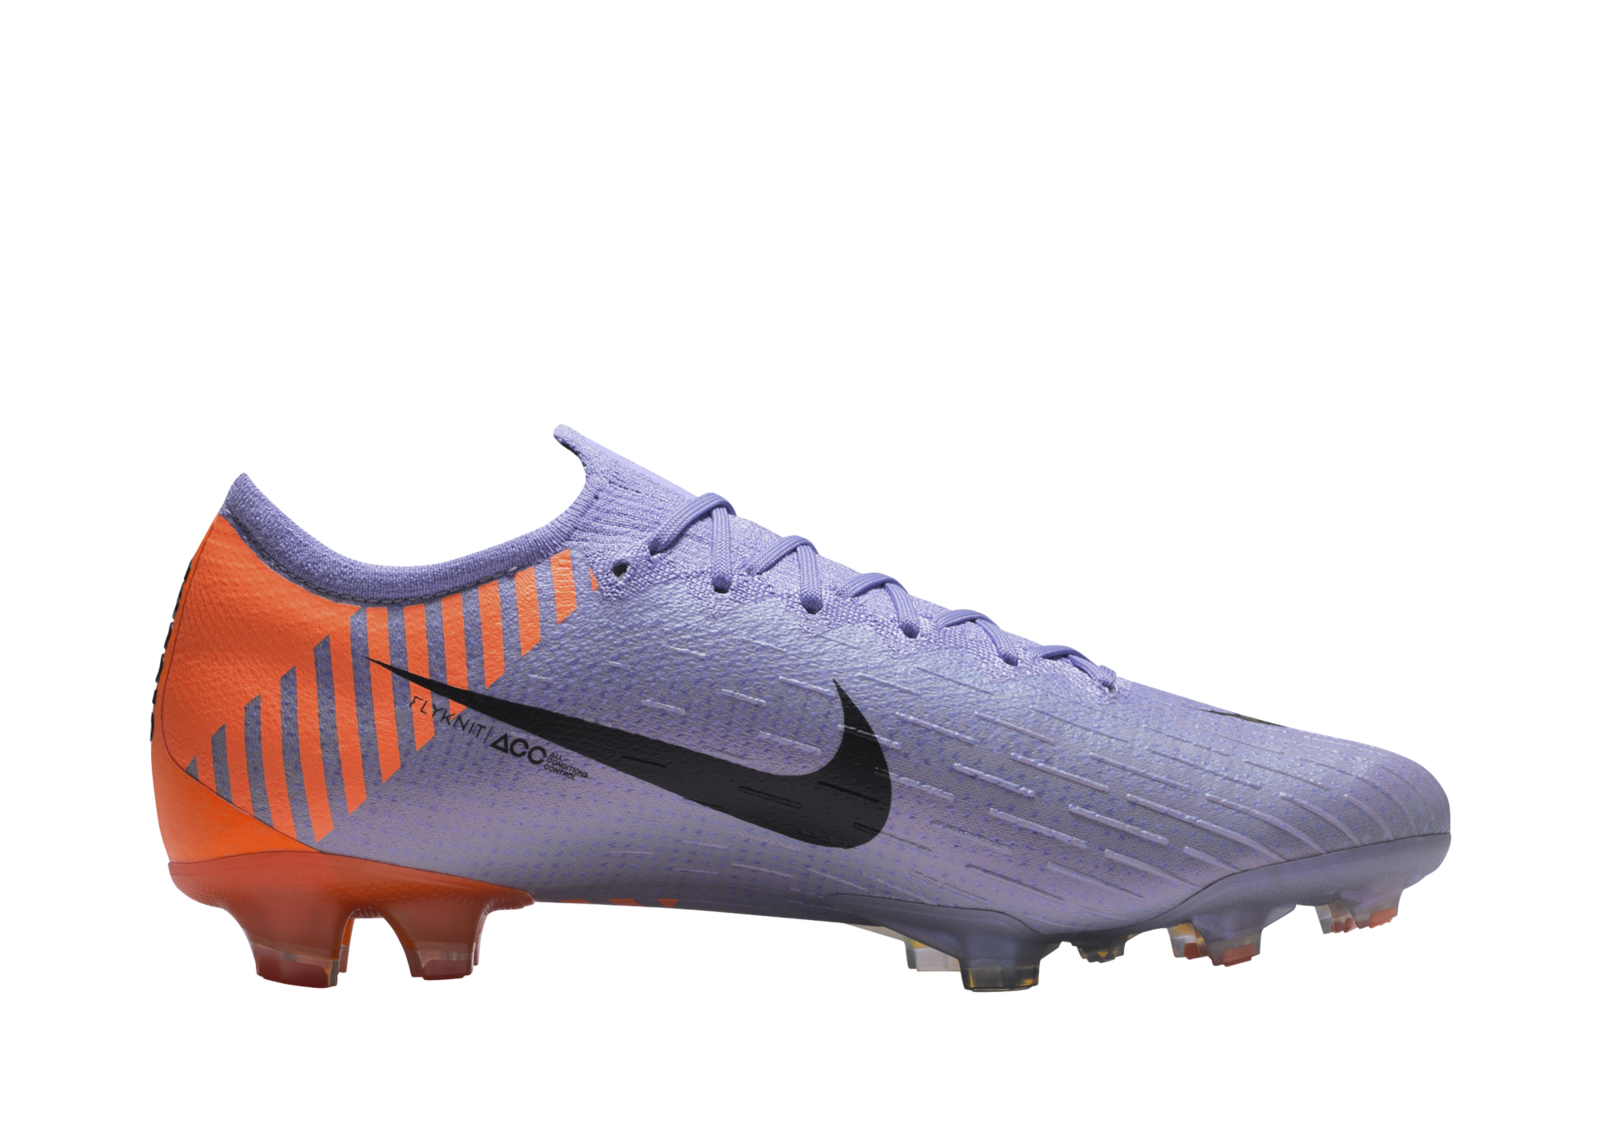 570afcd8a0e Celebrate the Heritage of the Nike Mercurial With Your Choice of ...